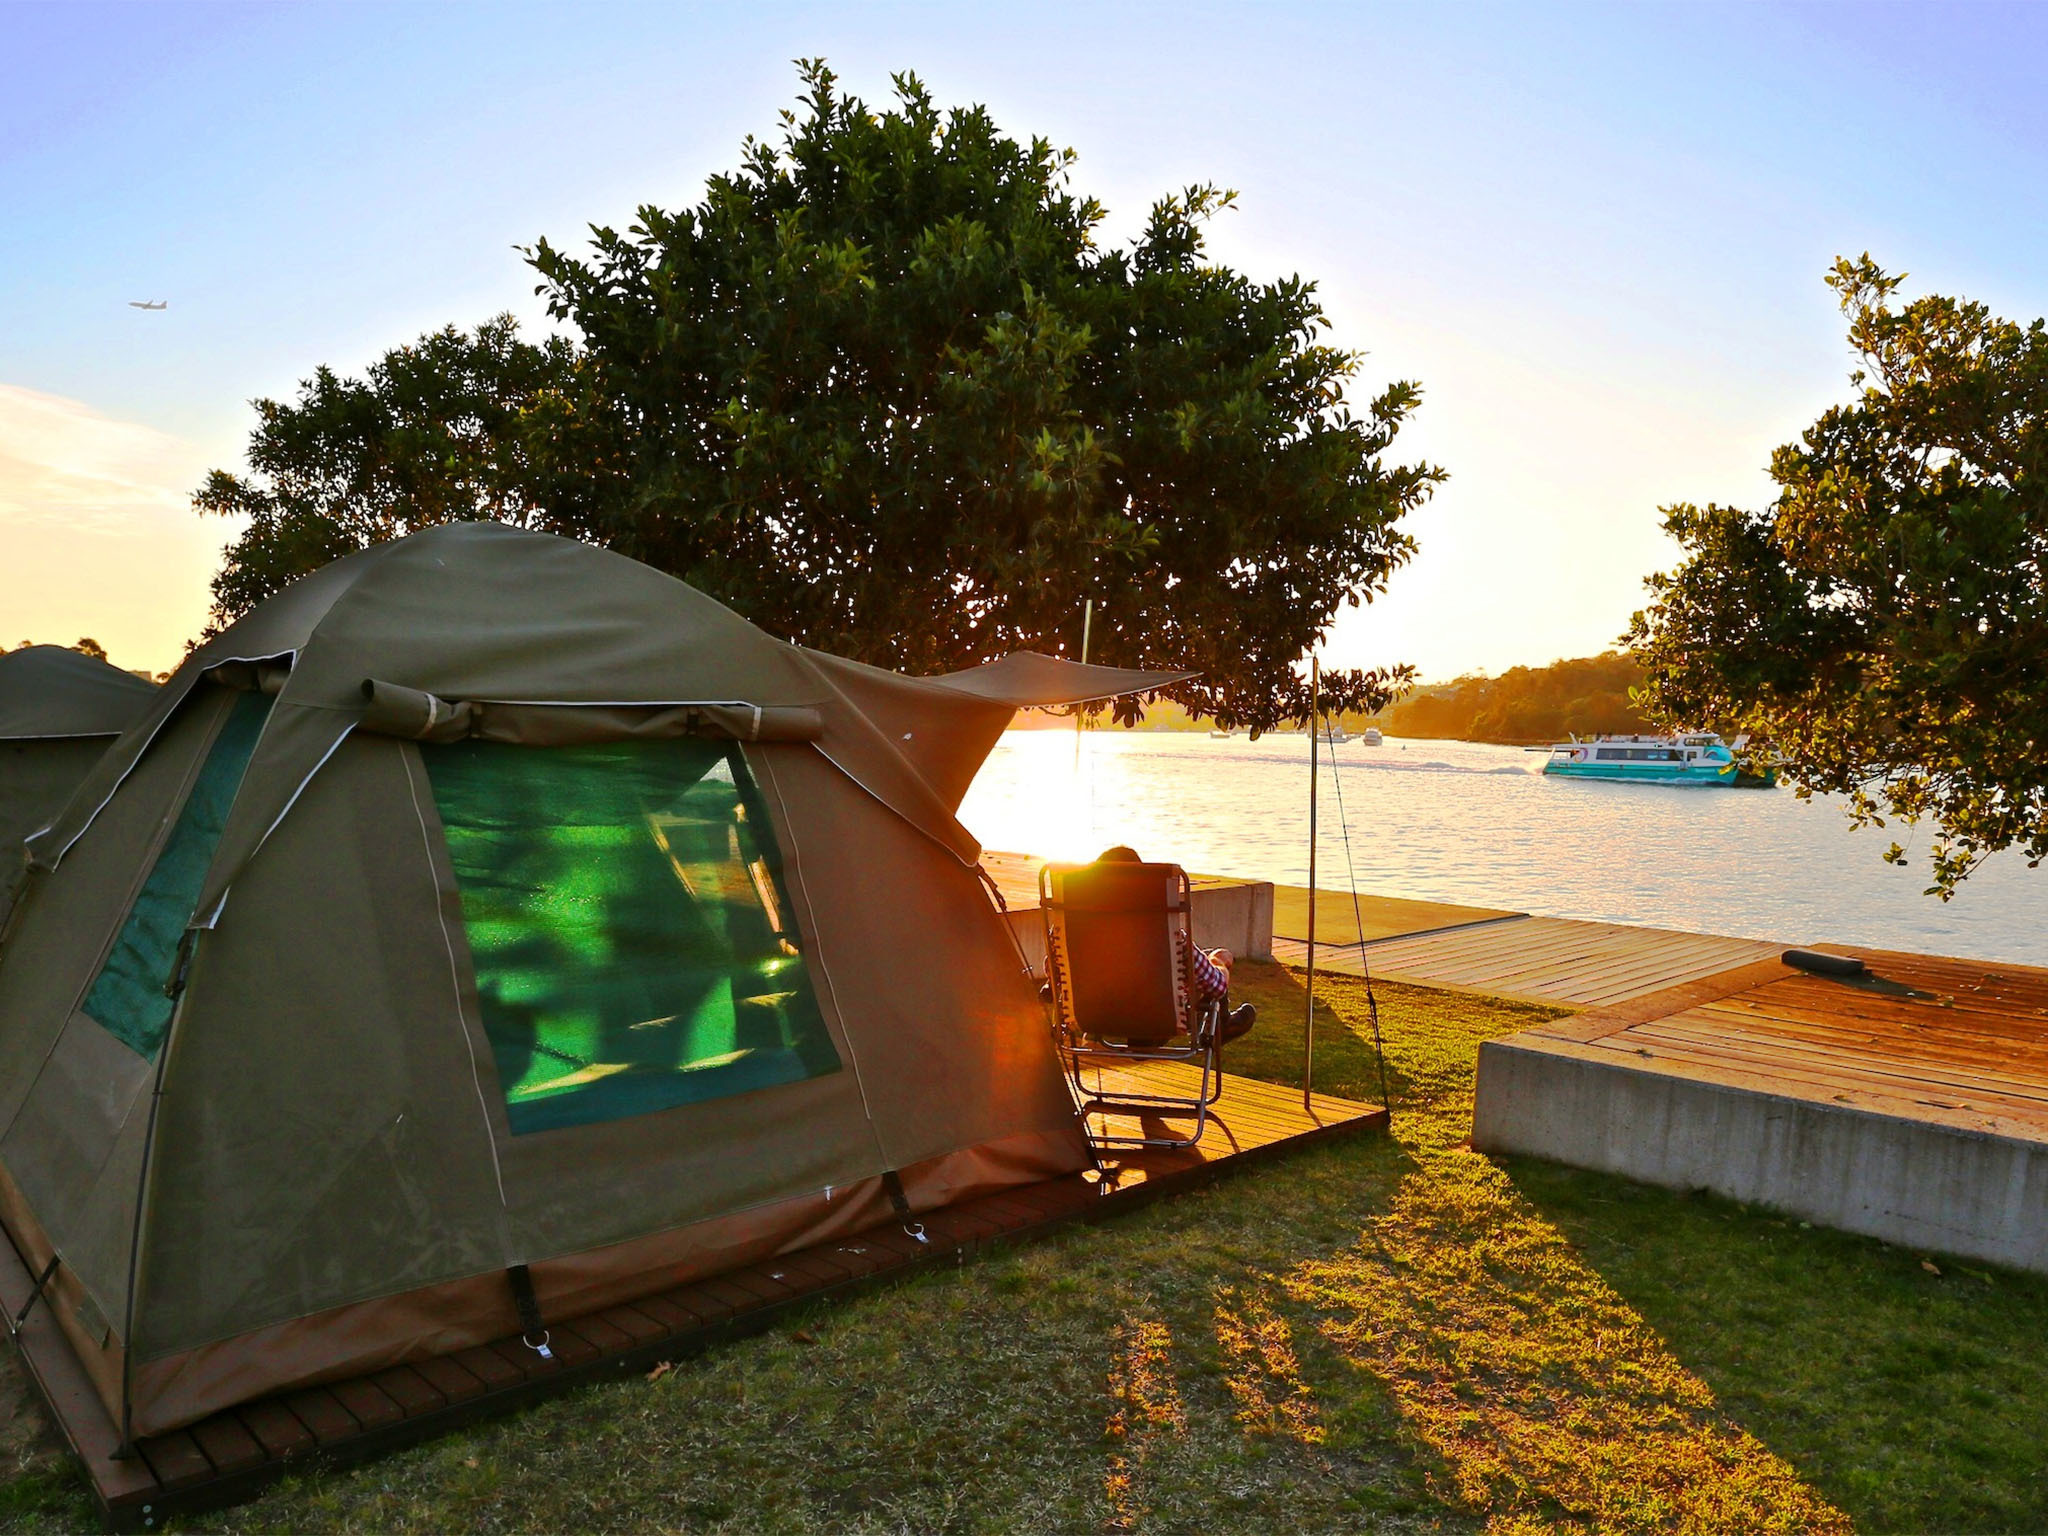 The best camping near Sydney